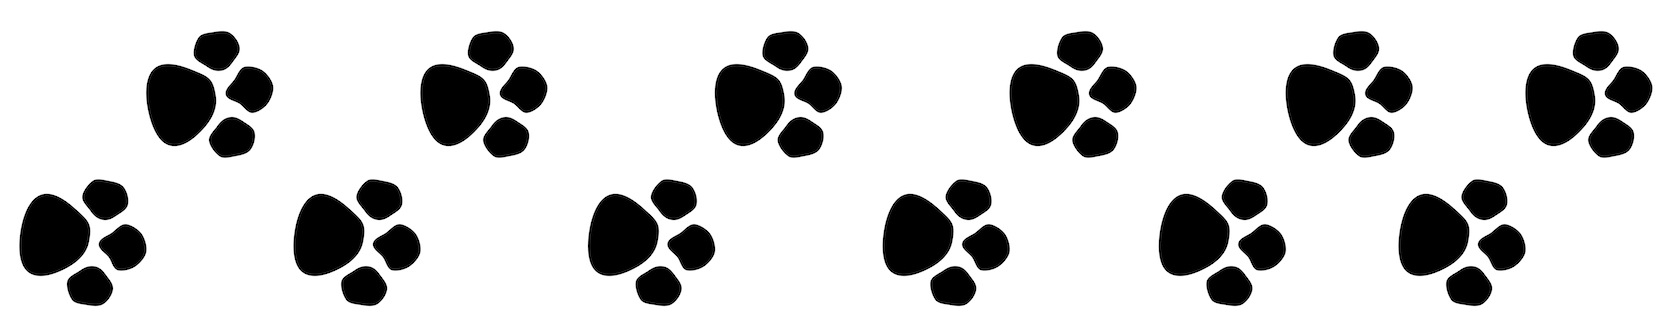 Paw print clipart free border picture library stock Dog Paw Print Clip Art – Gclipart.com picture library stock